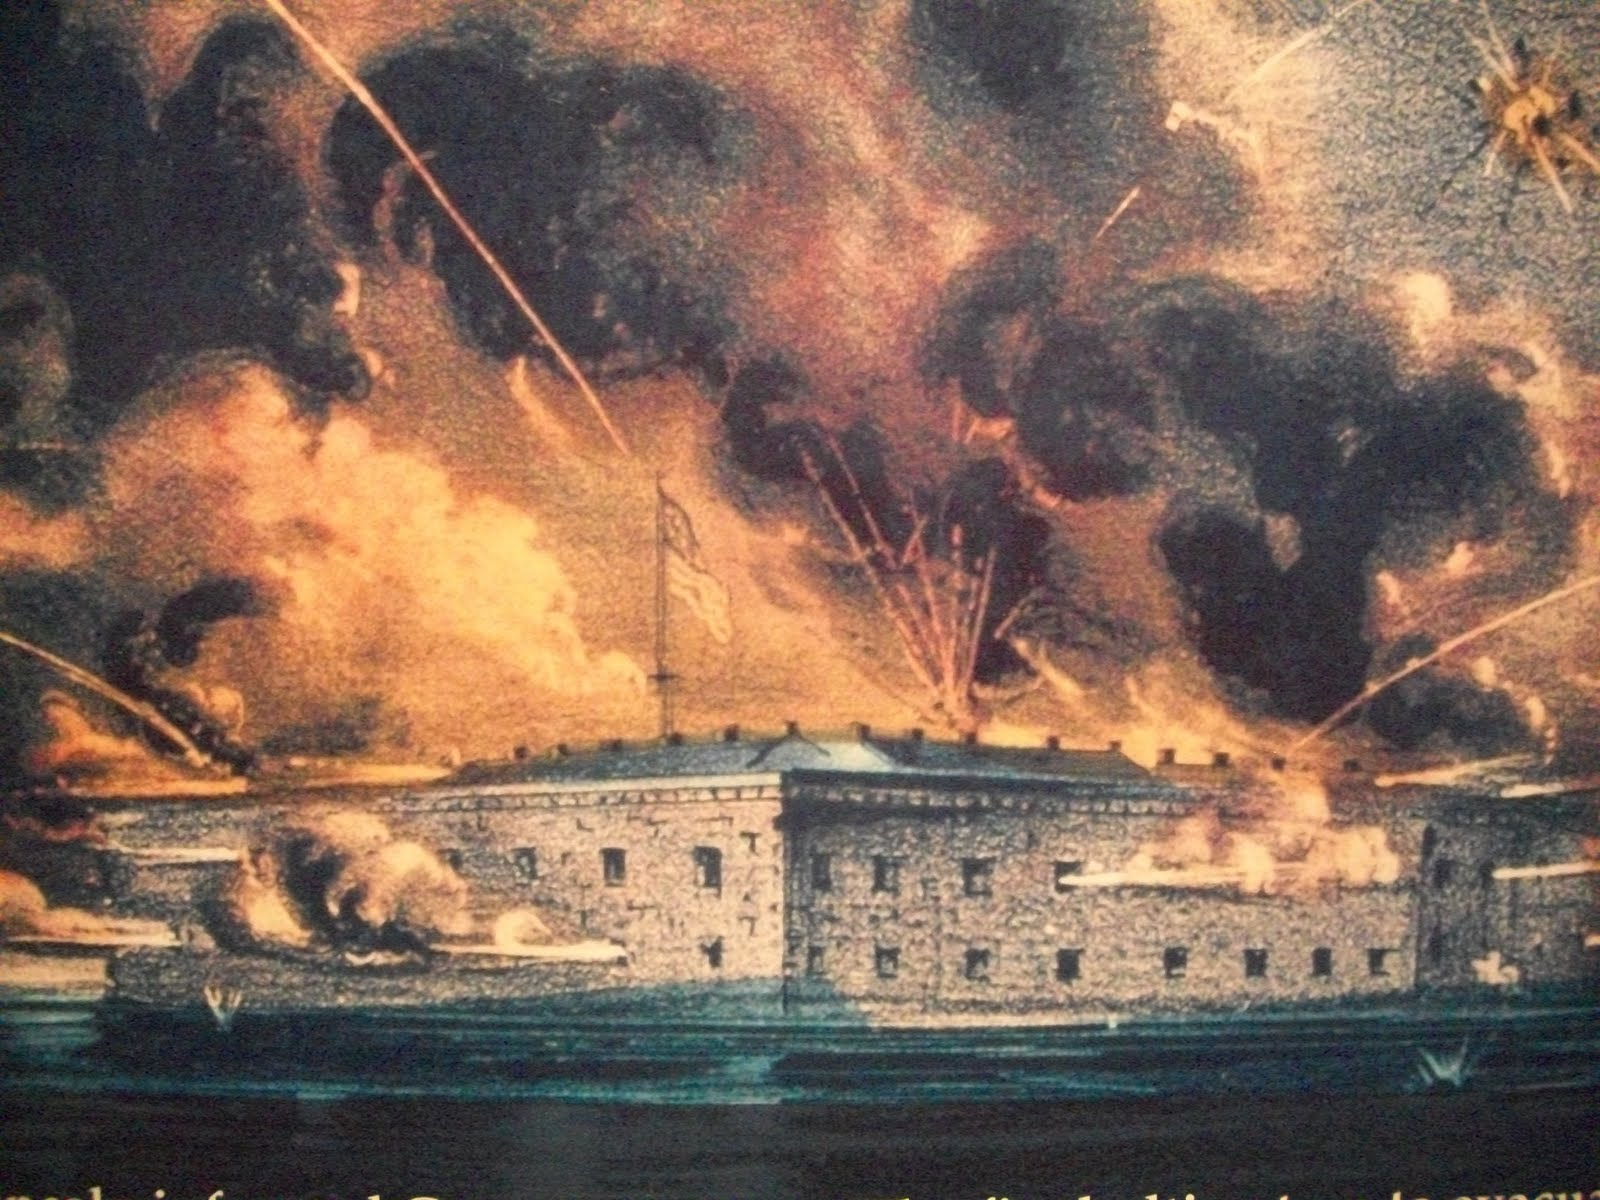 Hooves, Heels, and Wheels: Fort Sumter National Monument - Delco ...